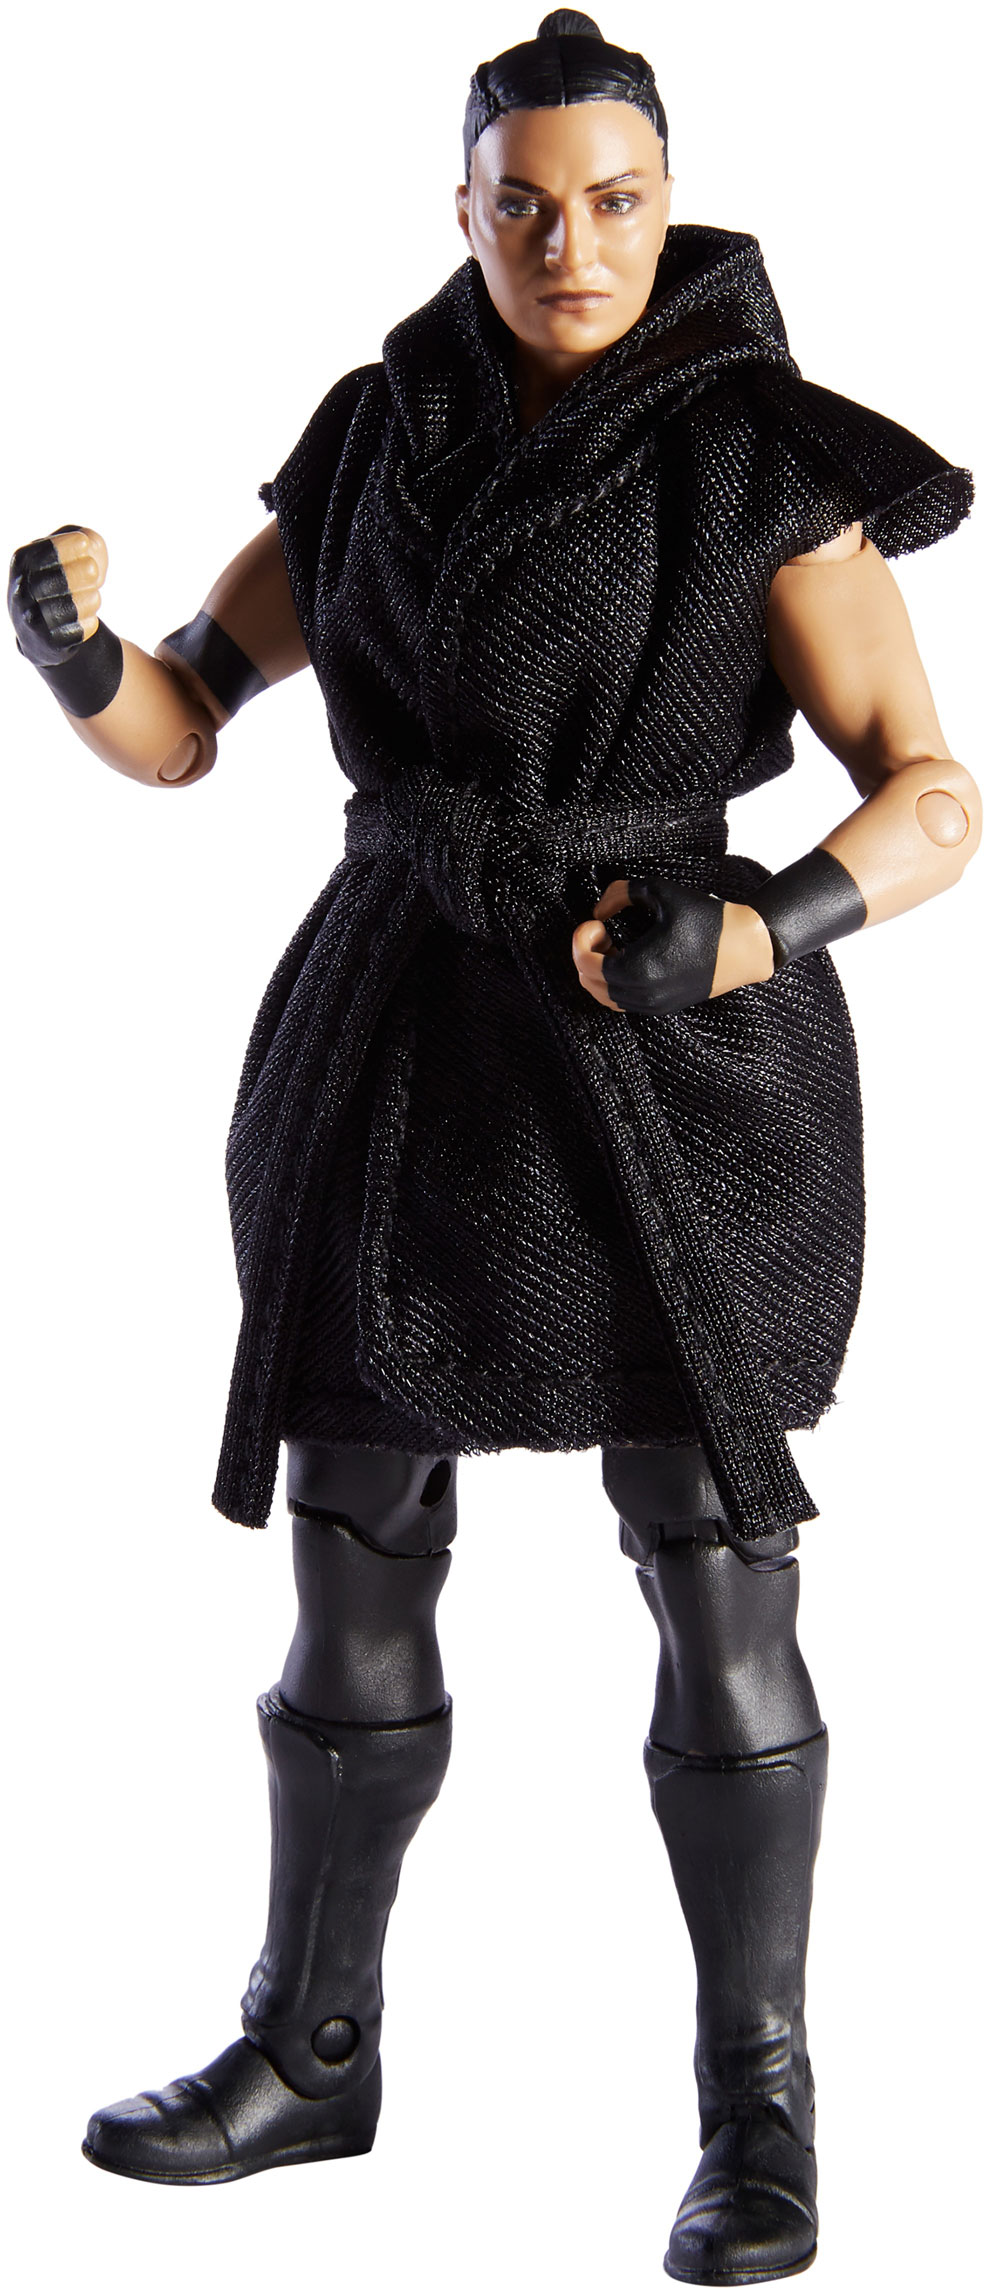 Wwe Sonya Deville Elite Collection Action Figure English